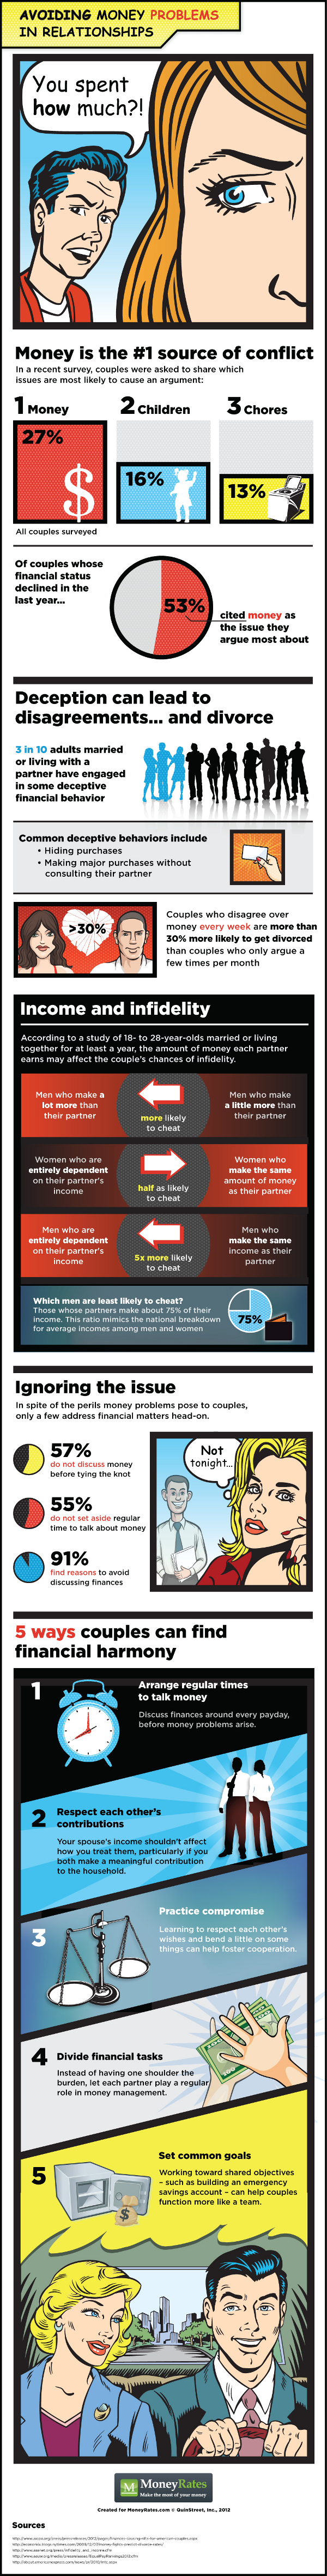 infographic-avoiding-money-problems-in-relationships_50bfbe2e38cb6